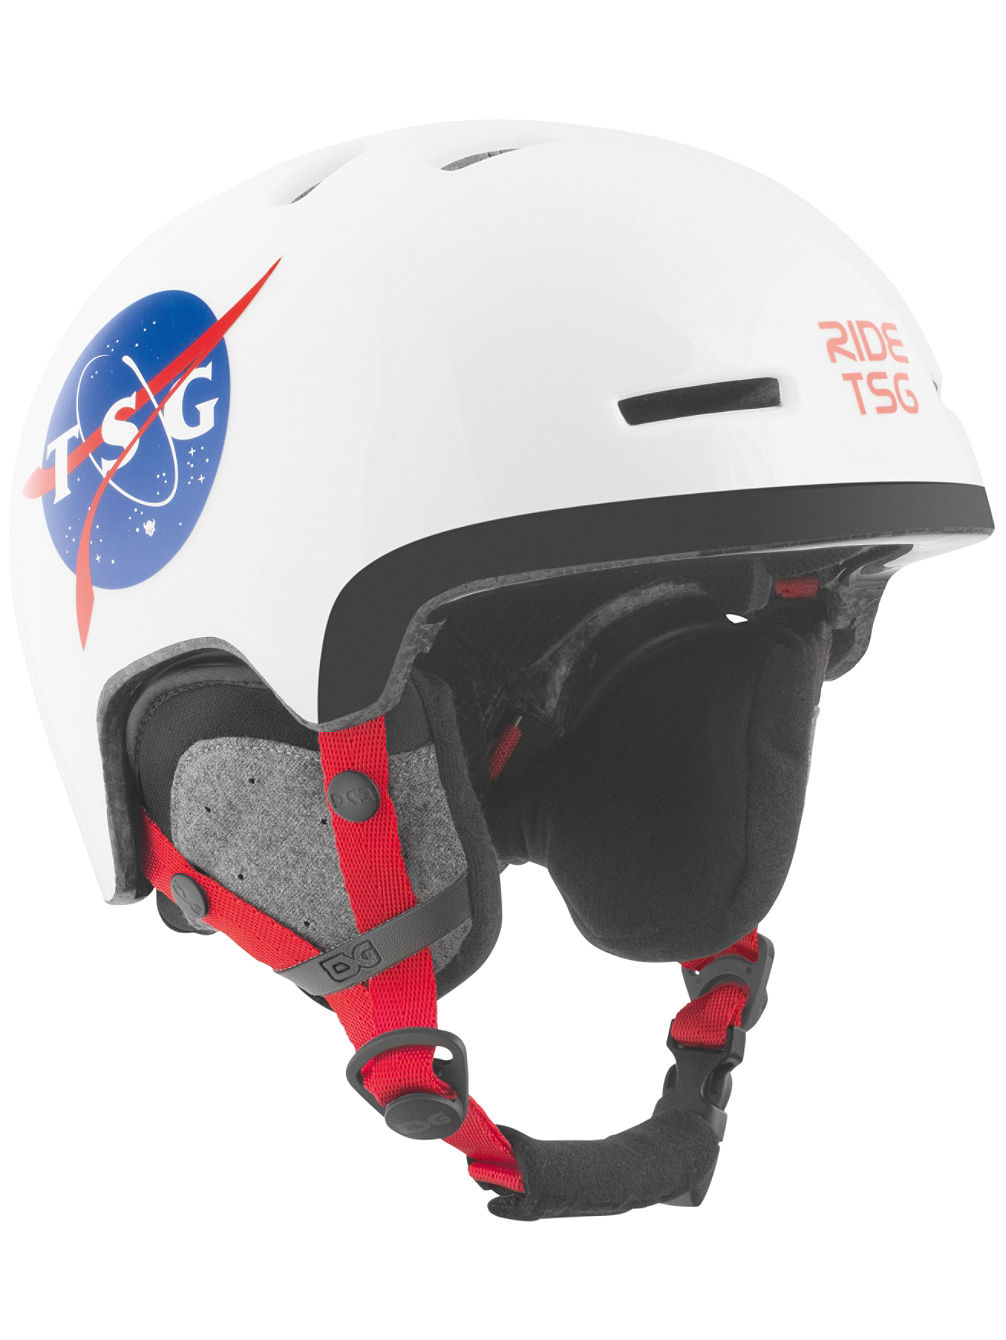 Arctic Nipper Maxi Graphic Design Helmet